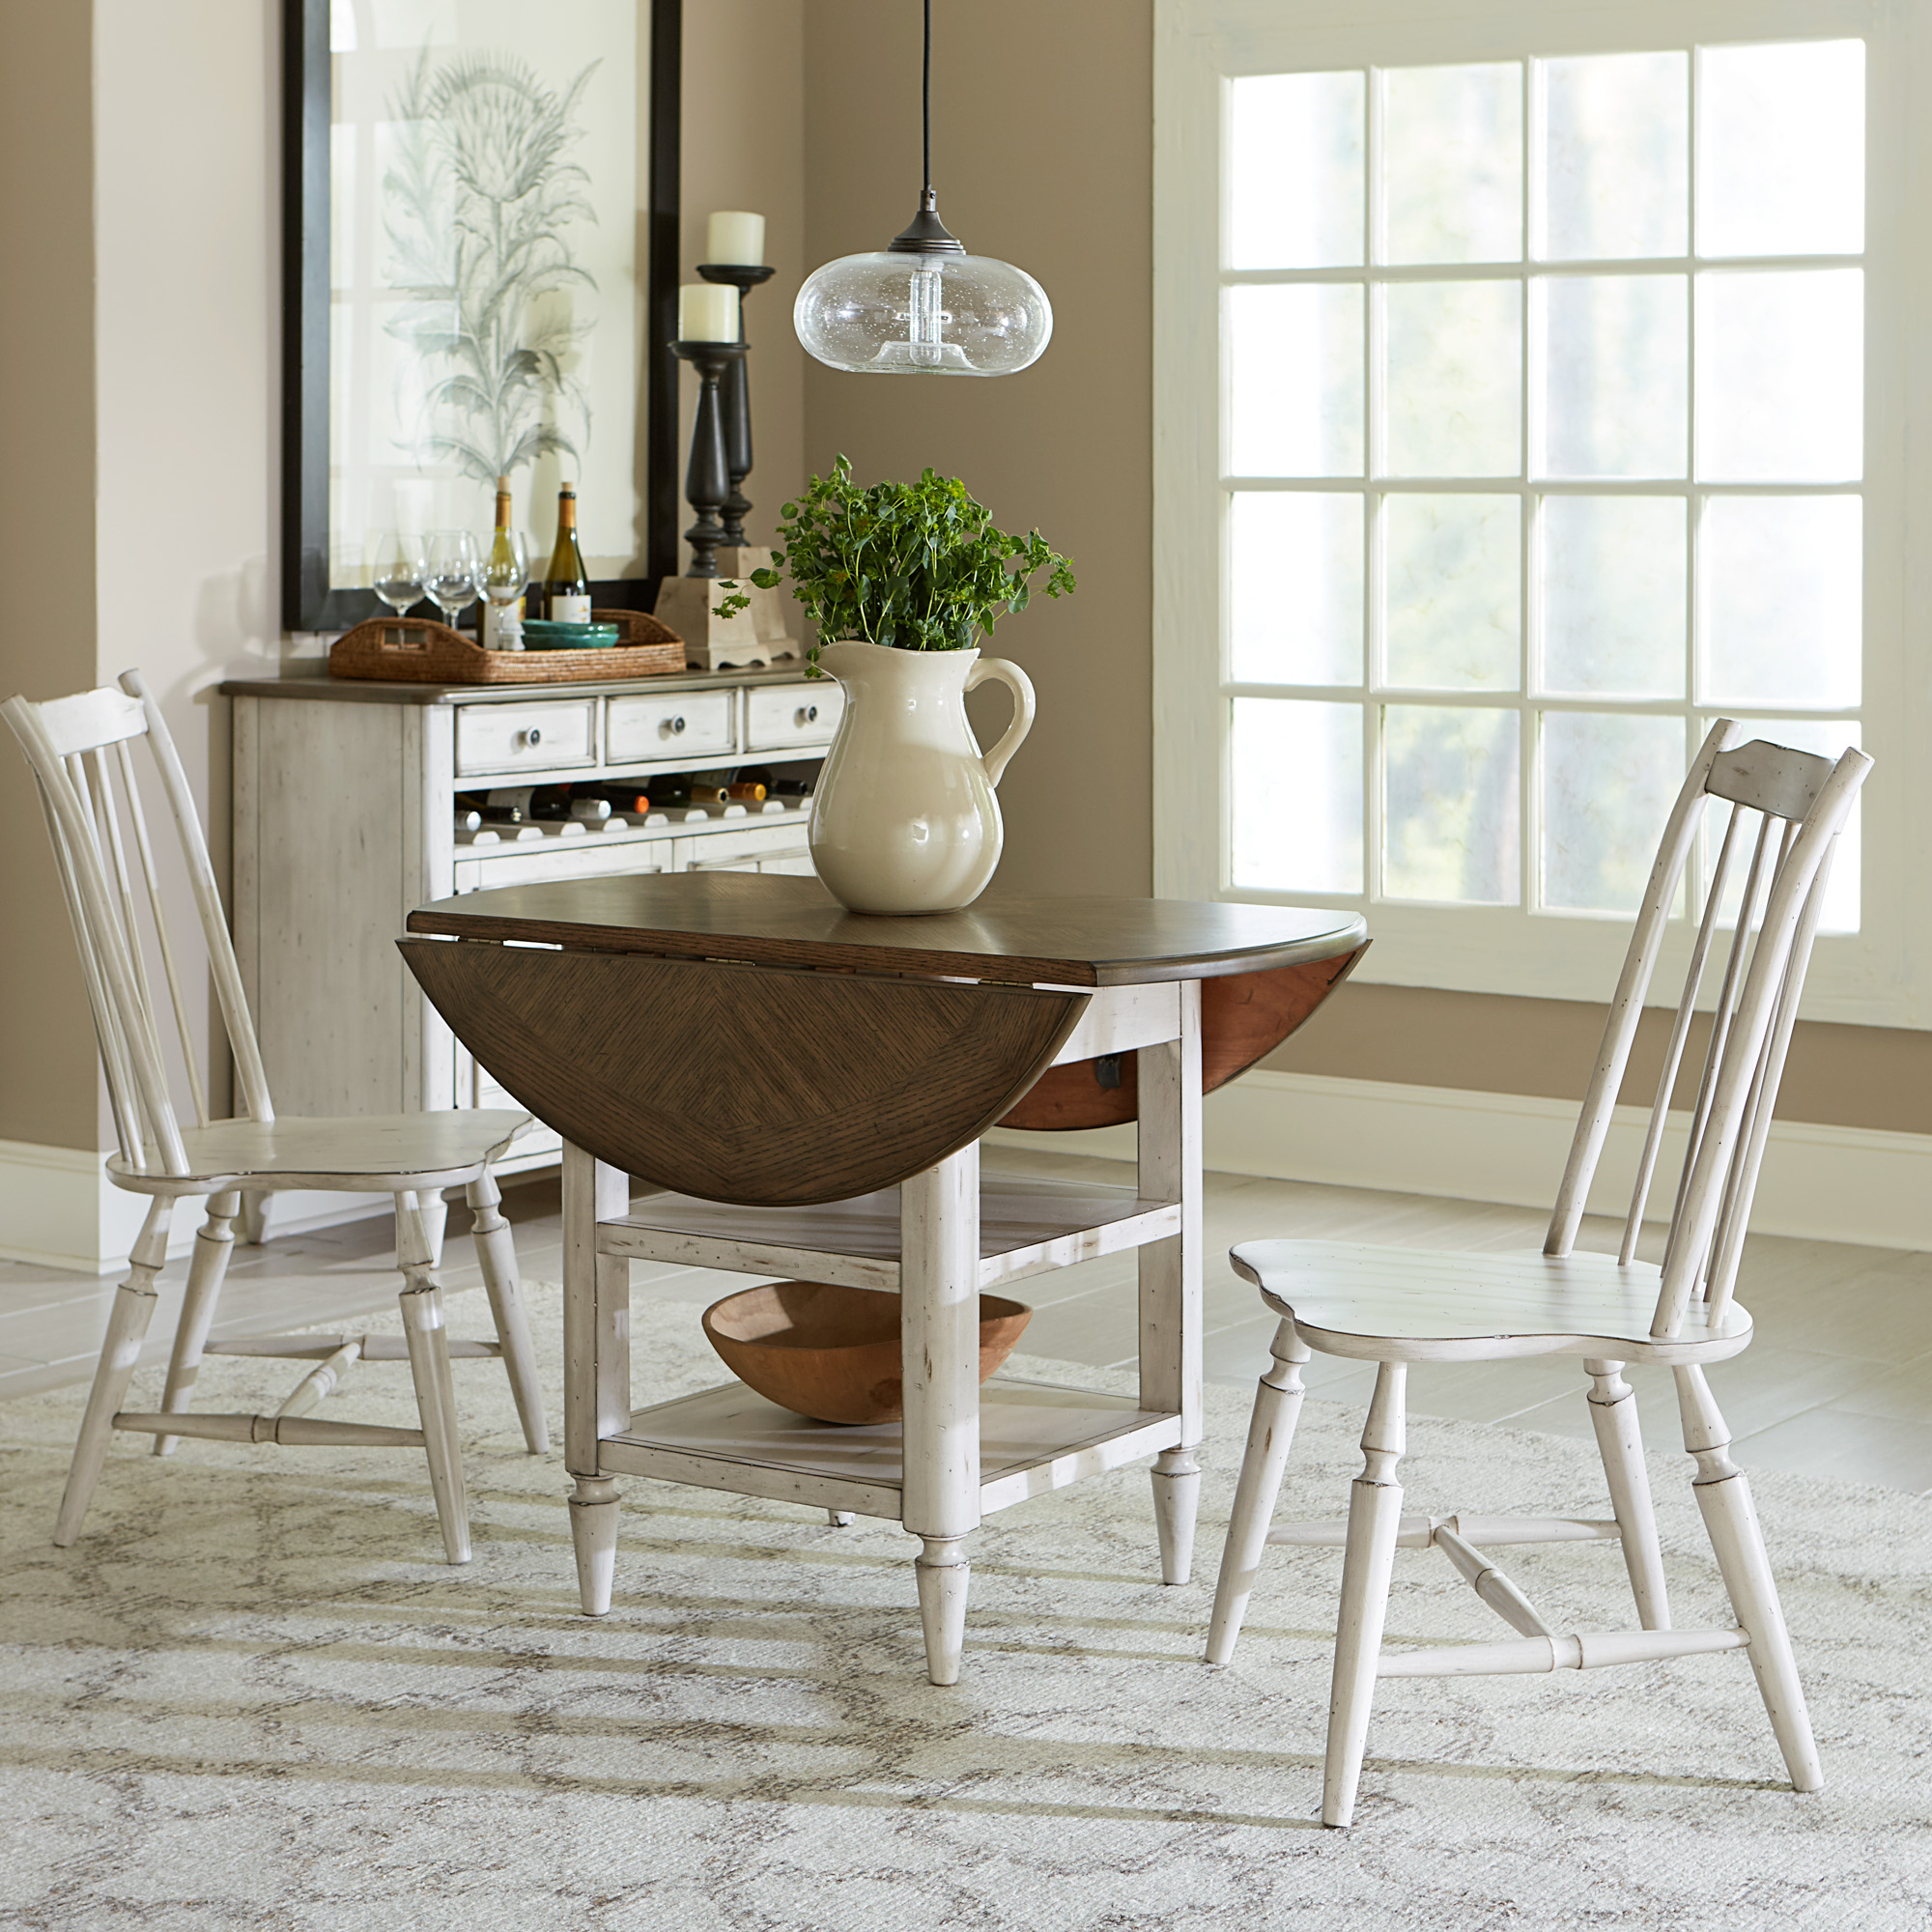 Dining Room Sets, Dining Room Furniture | Liberty Furniture Intended For Most Popular Springfield 3 Piece Dining Sets (View 4 of 20)